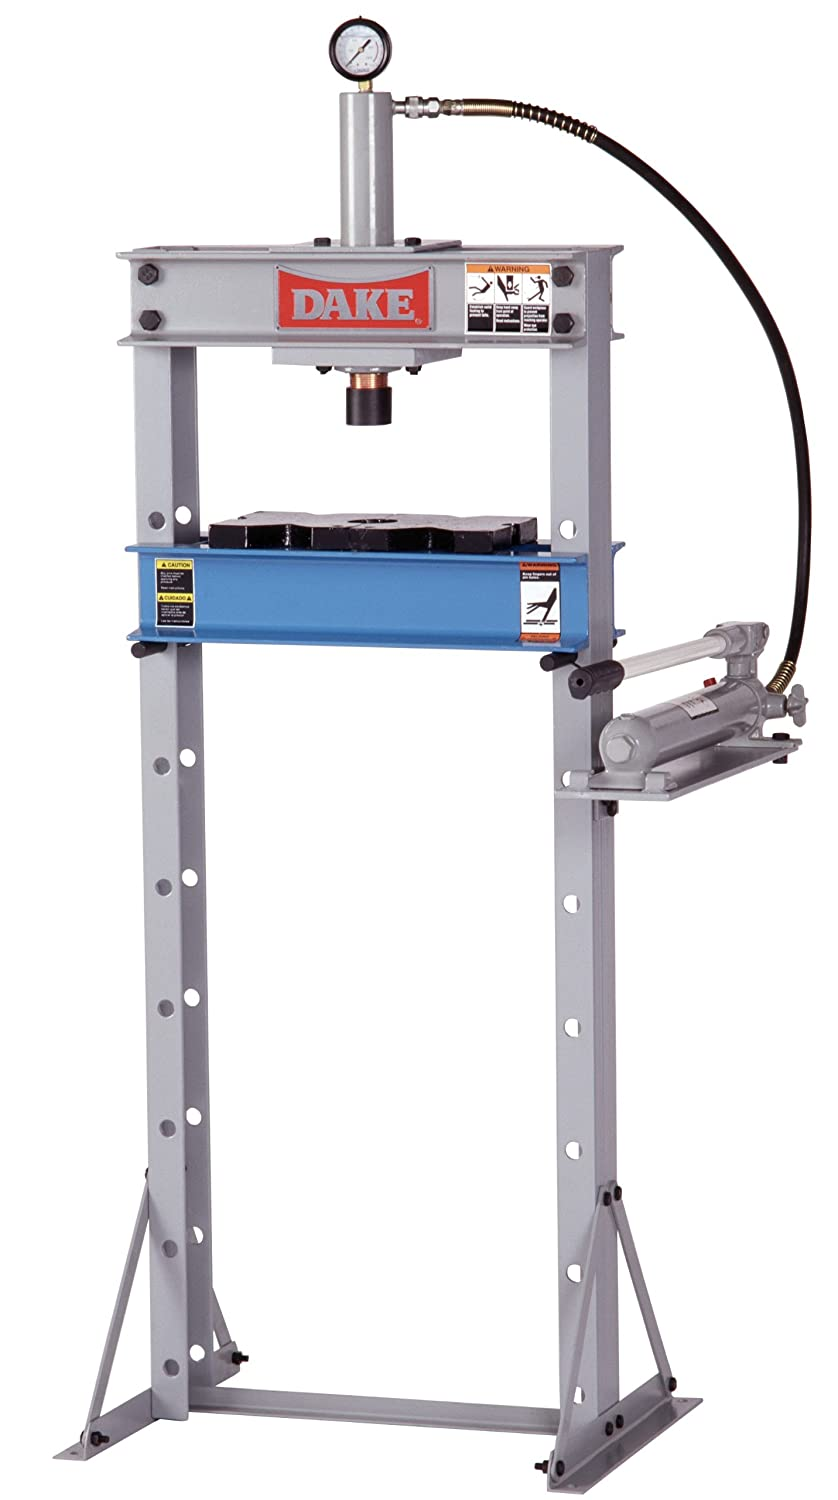 Dake F-10 Model Manual Utility Hydraulic Floor Press, 10 Ton Capacity, 24 Length x 28 Width x 60 Height